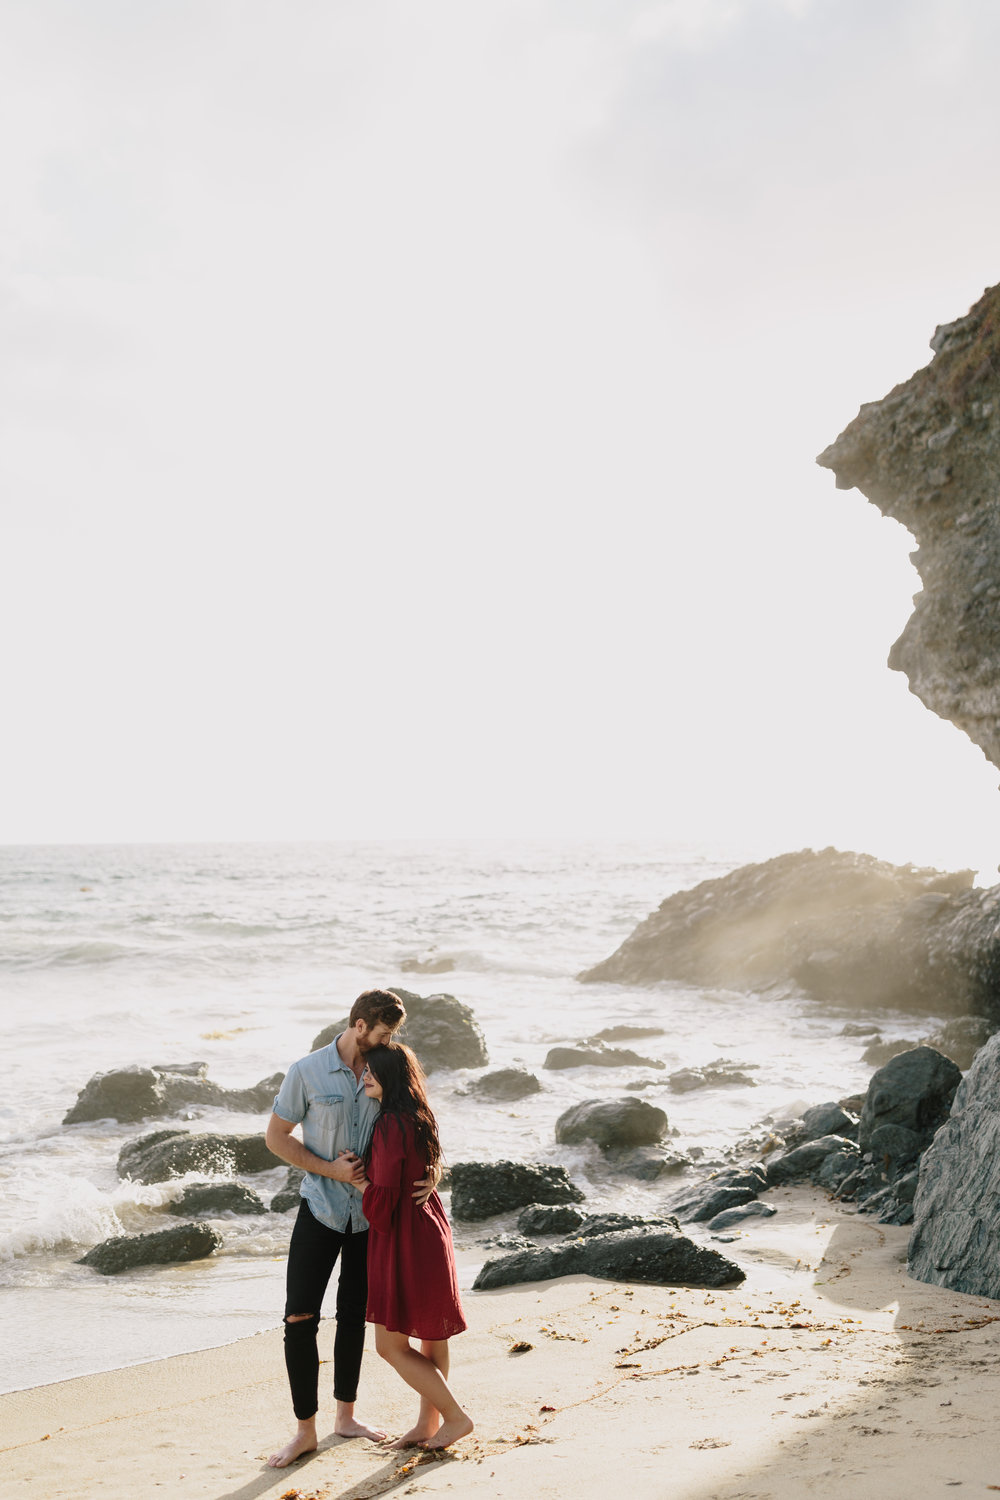 alyssa barletter photography laguna beach california anniversary engagement wedding photographer sunset-11.jpg